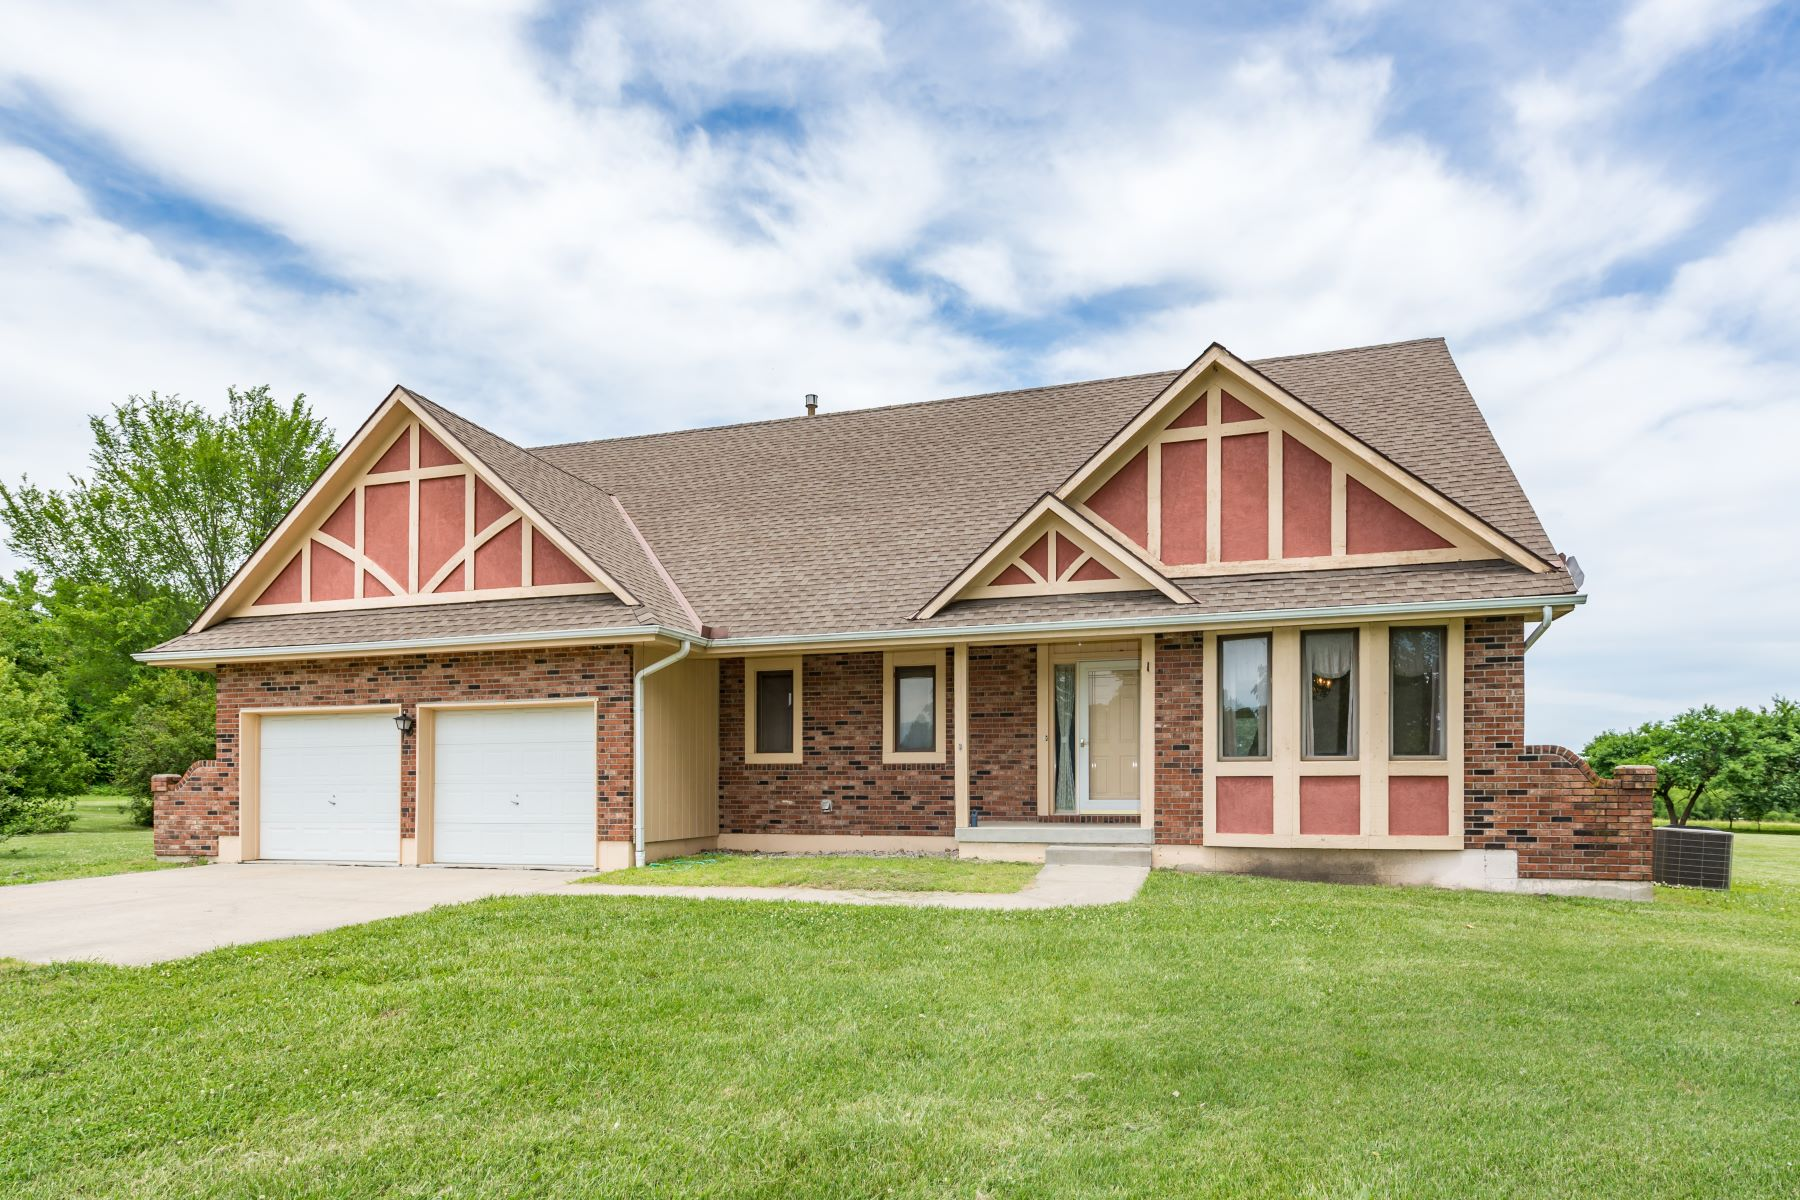 Single Family Homes for Sale at 18410 Moorland Drive Pleasant Hill, Missouri 64080 United States